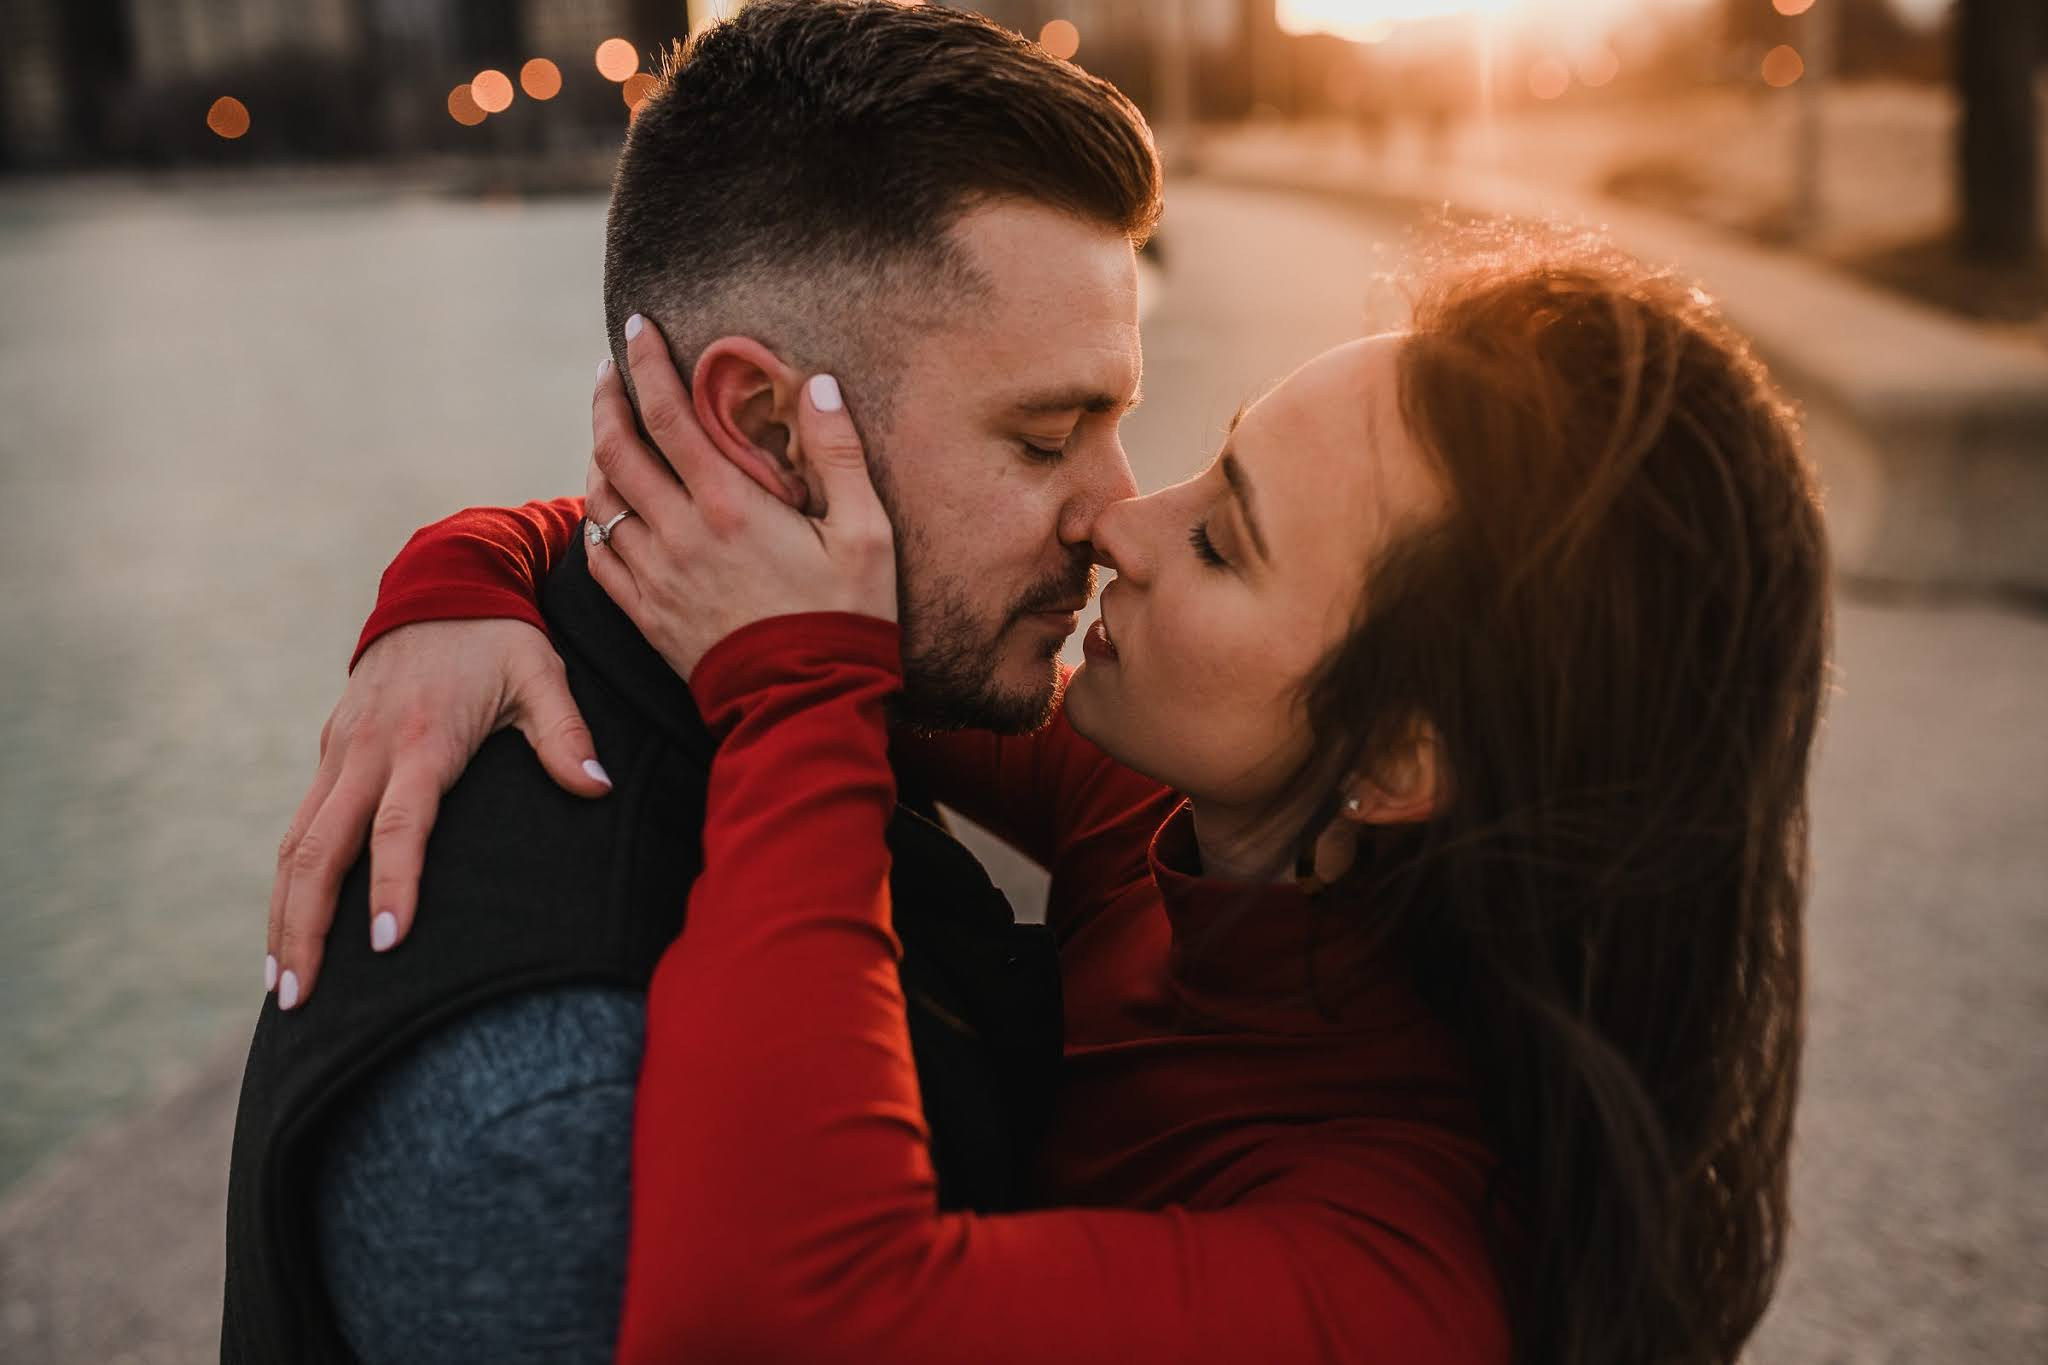 Love Problem Solution - Pay After Result